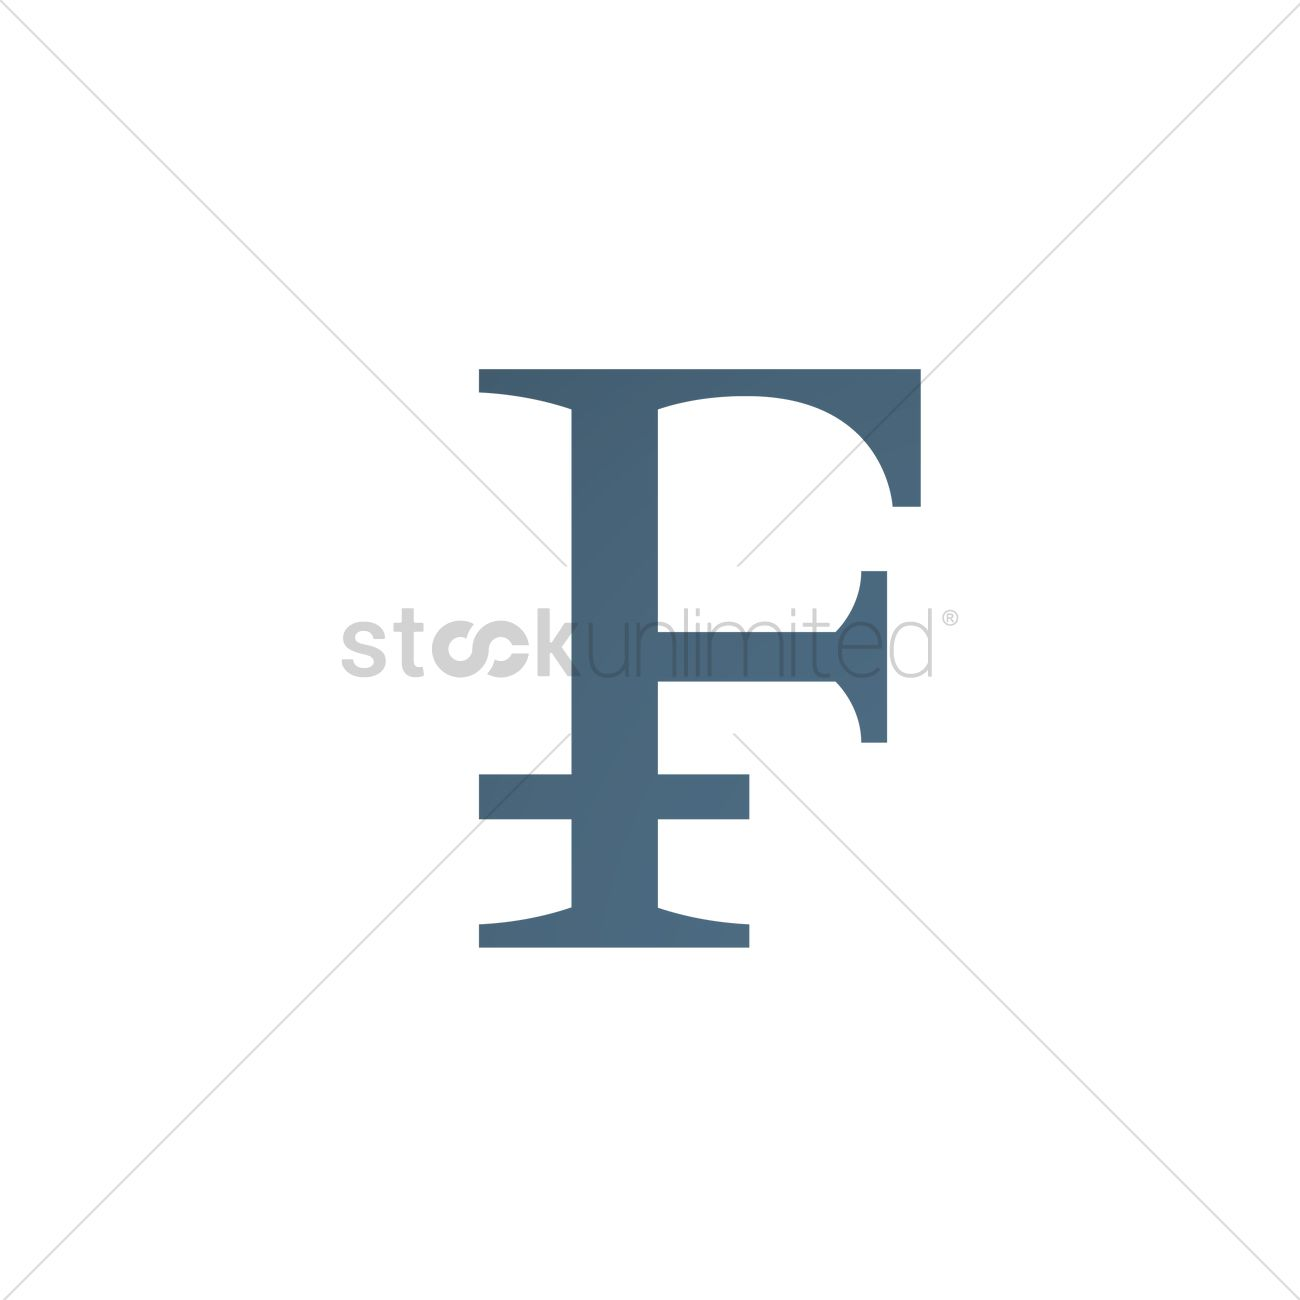 Swiss franc currency symbol vector image 2034589 stockunlimited swiss franc currency symbol vector graphic buycottarizona Images